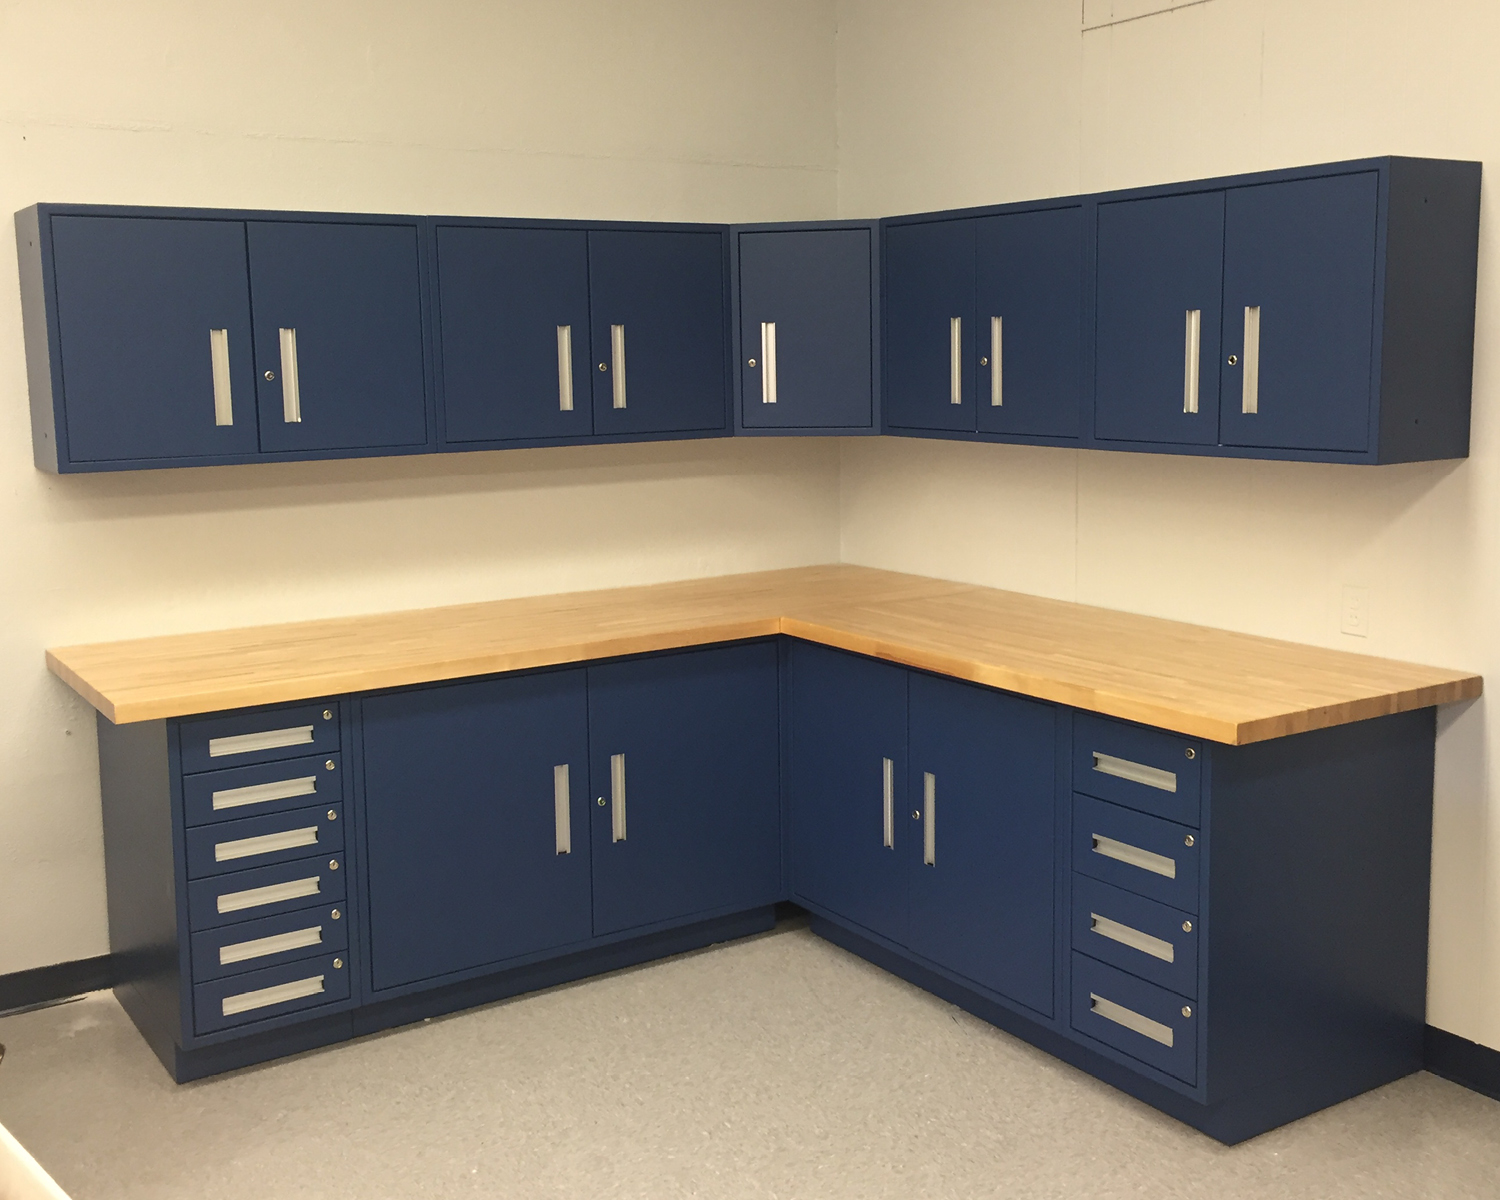 Five Drawer Variable Wide Width Cabinet